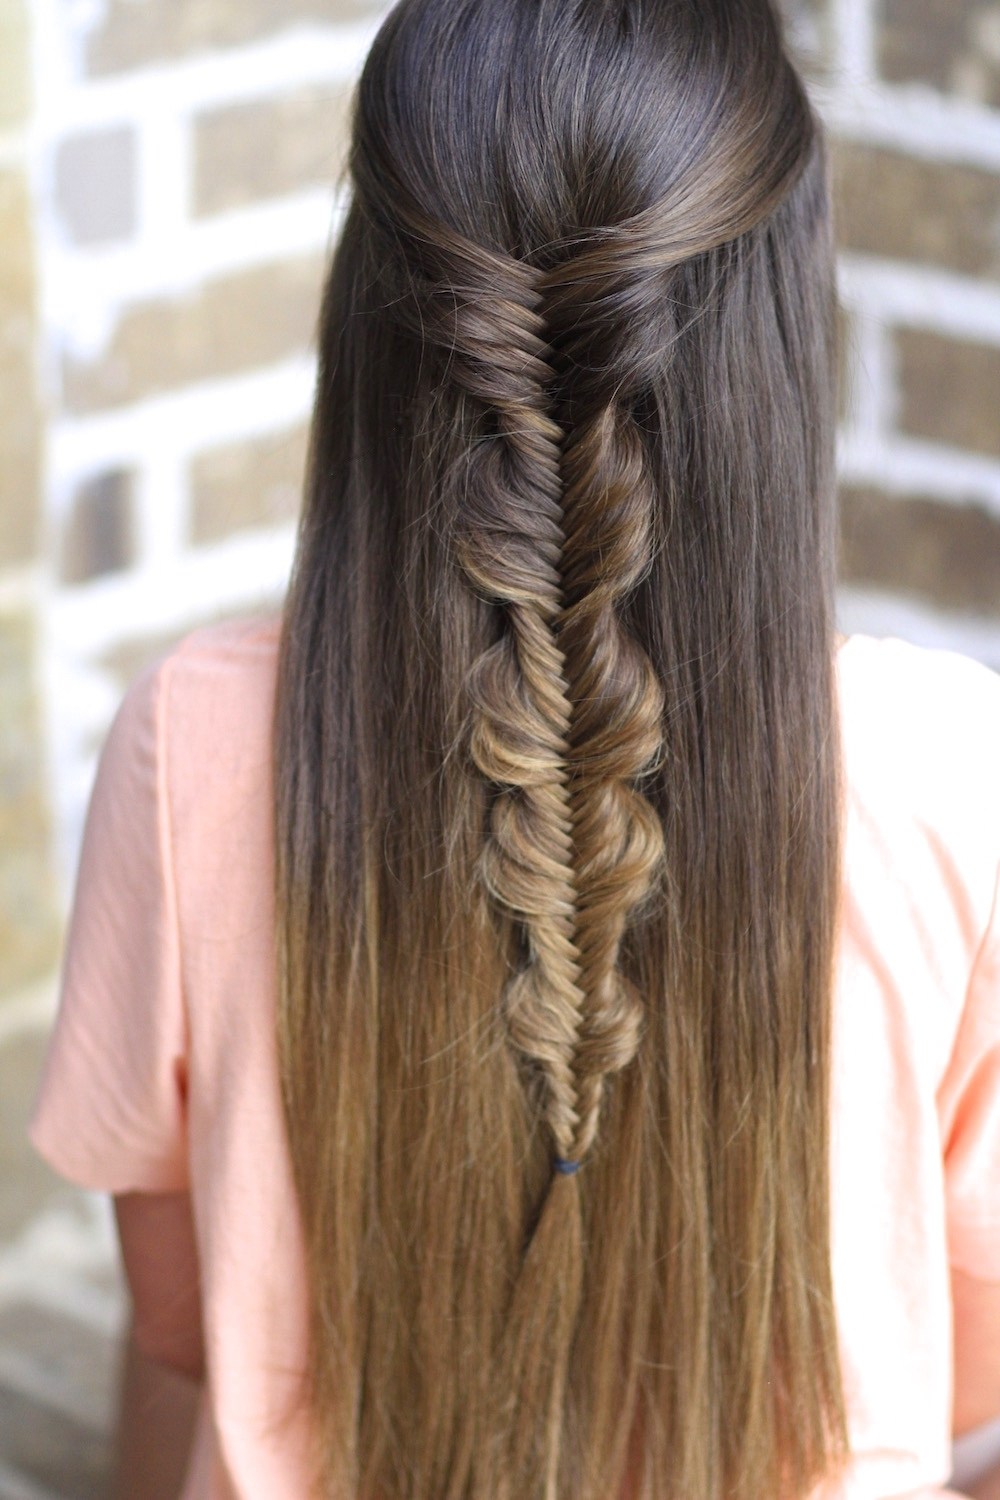 Cute Girls Hairstyles With 2018 French Braid Ponytail Hairstyles With Bubbles (View 13 of 20)